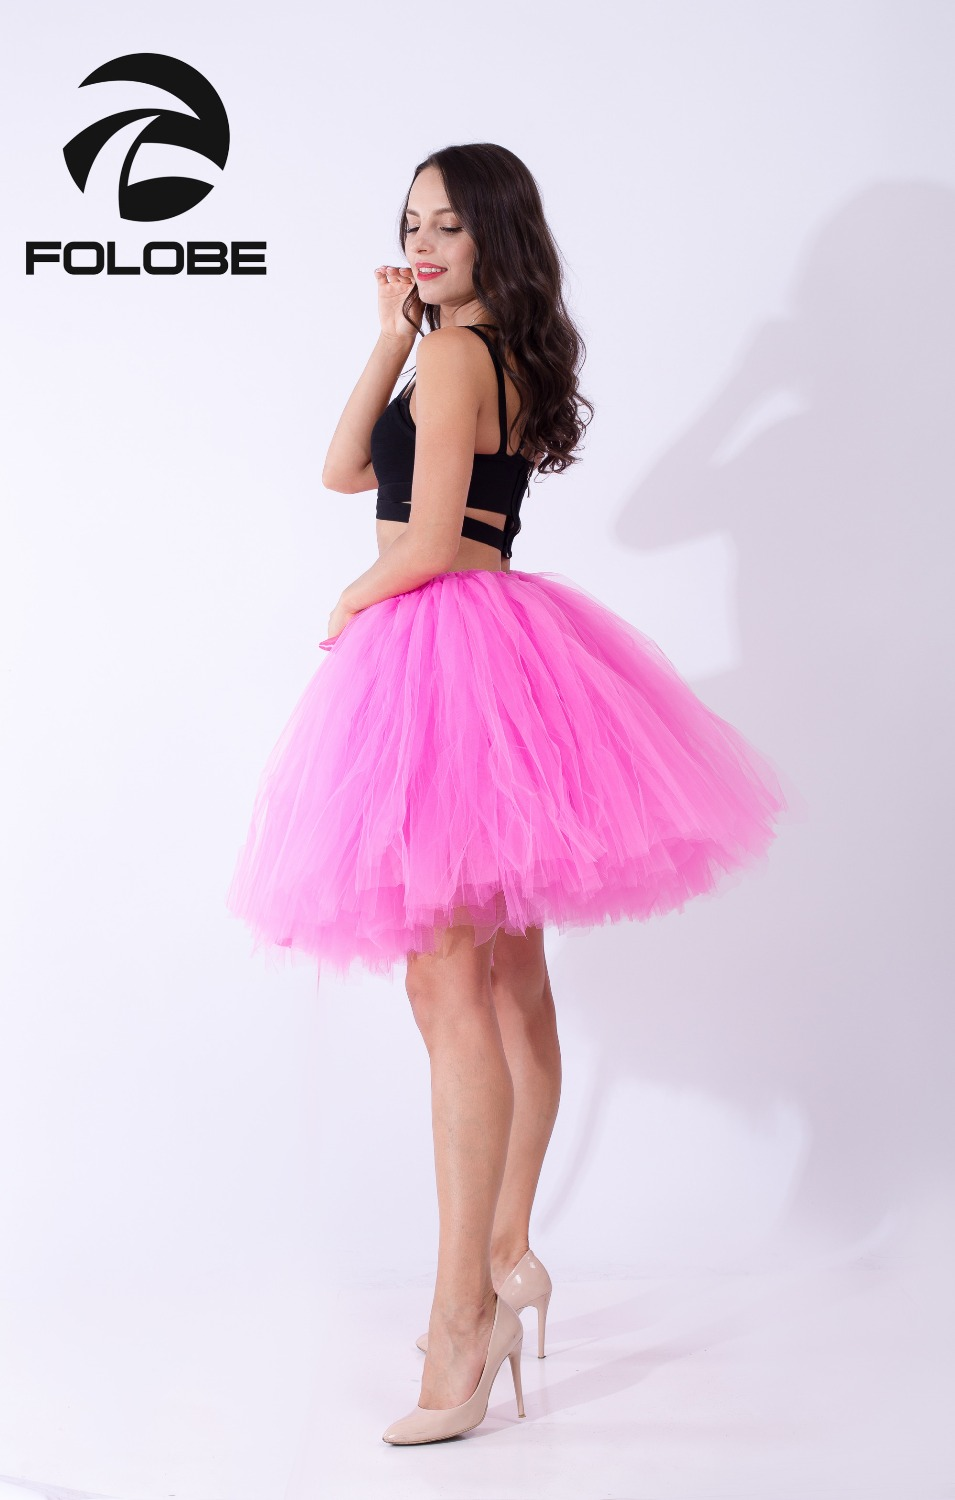 5af75ecbfd FOLOBE Hot Pink Handmade Midi Tulle Skirt Casual Tutu Skirts Women Ball  Gown Party Petticoat 2017 faldas saia jupe-in Skirts from Women's Clothing  on ...